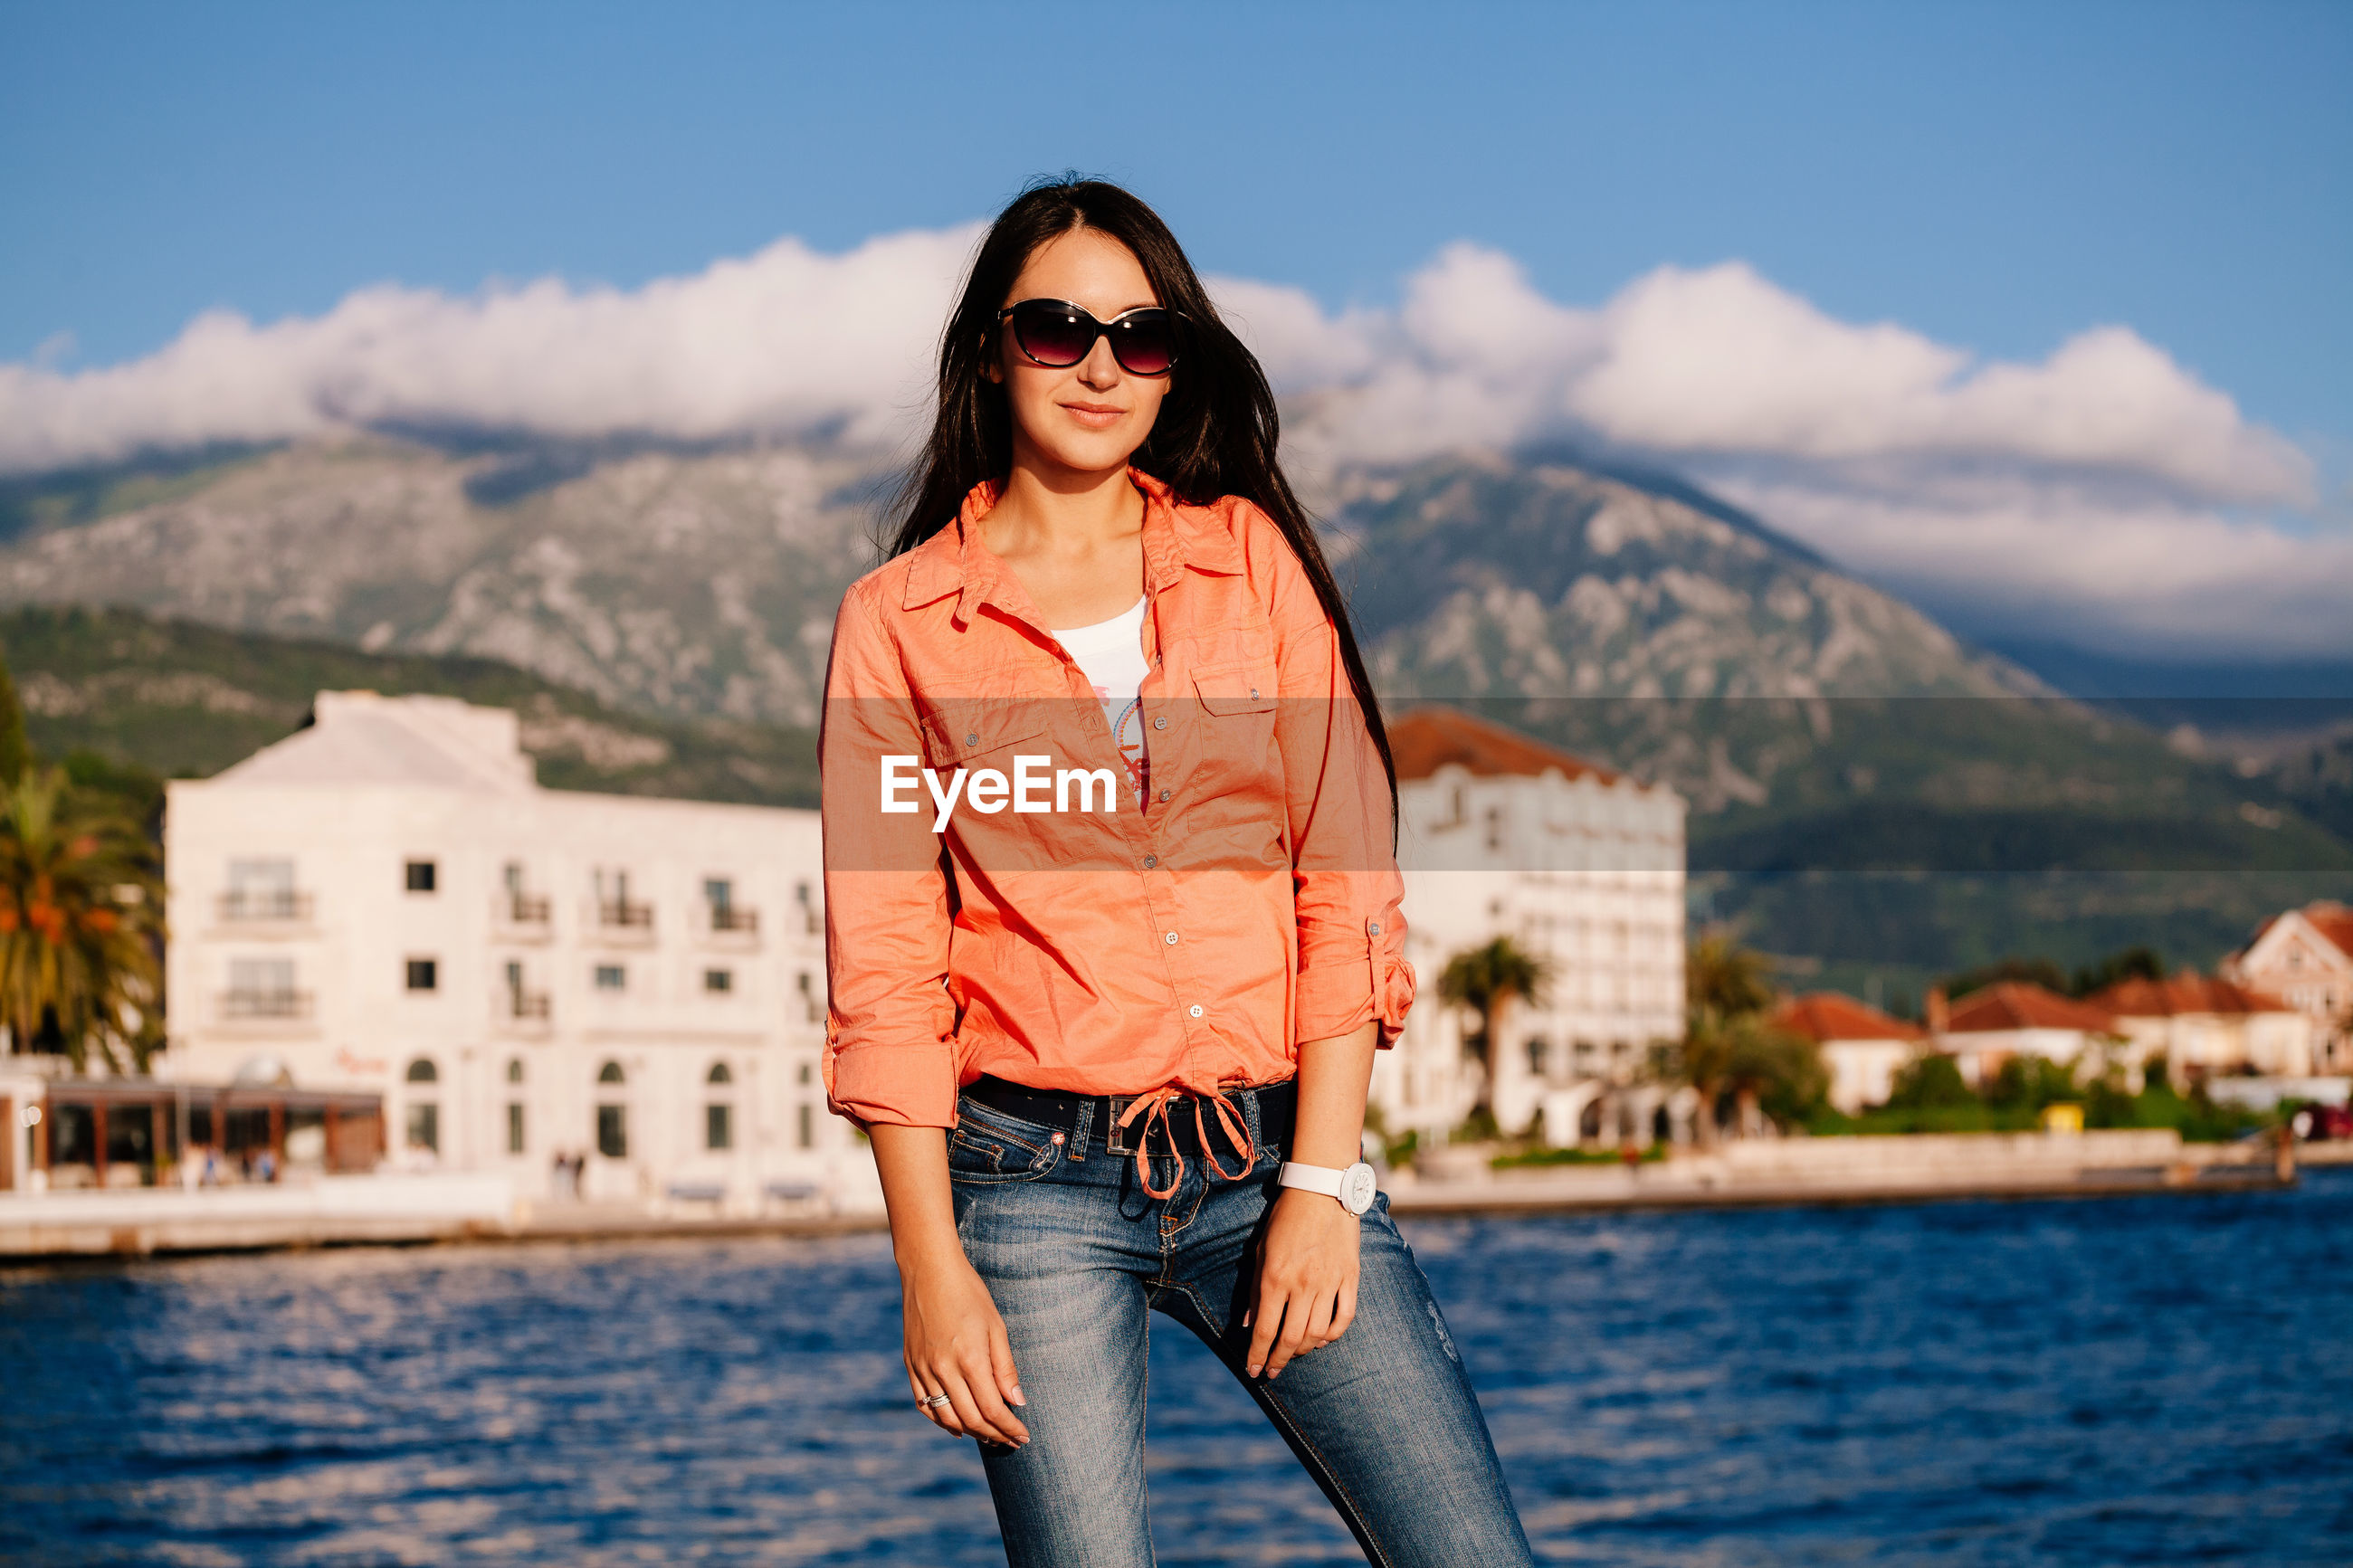 Woman in sunglasses standing at lake against mountains